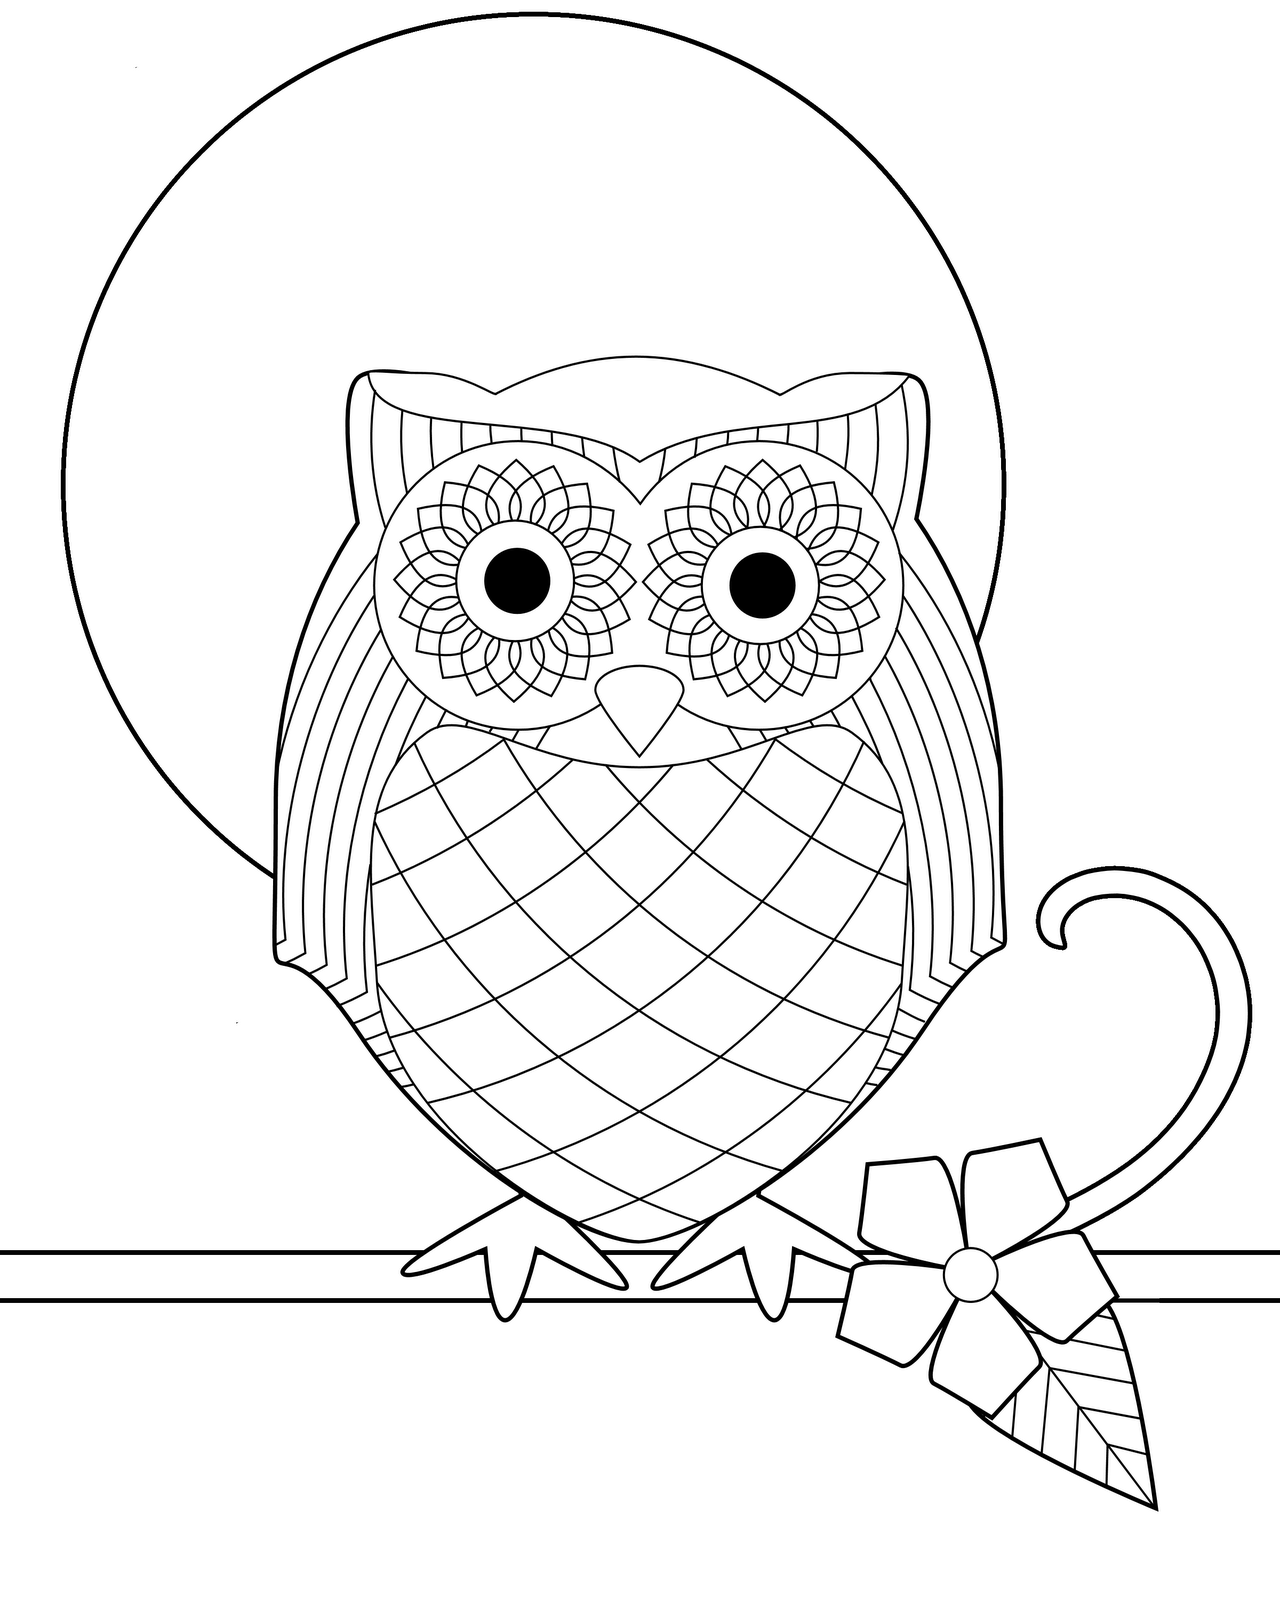 4 Images of Free Printable Owl Coloring Pages Adult